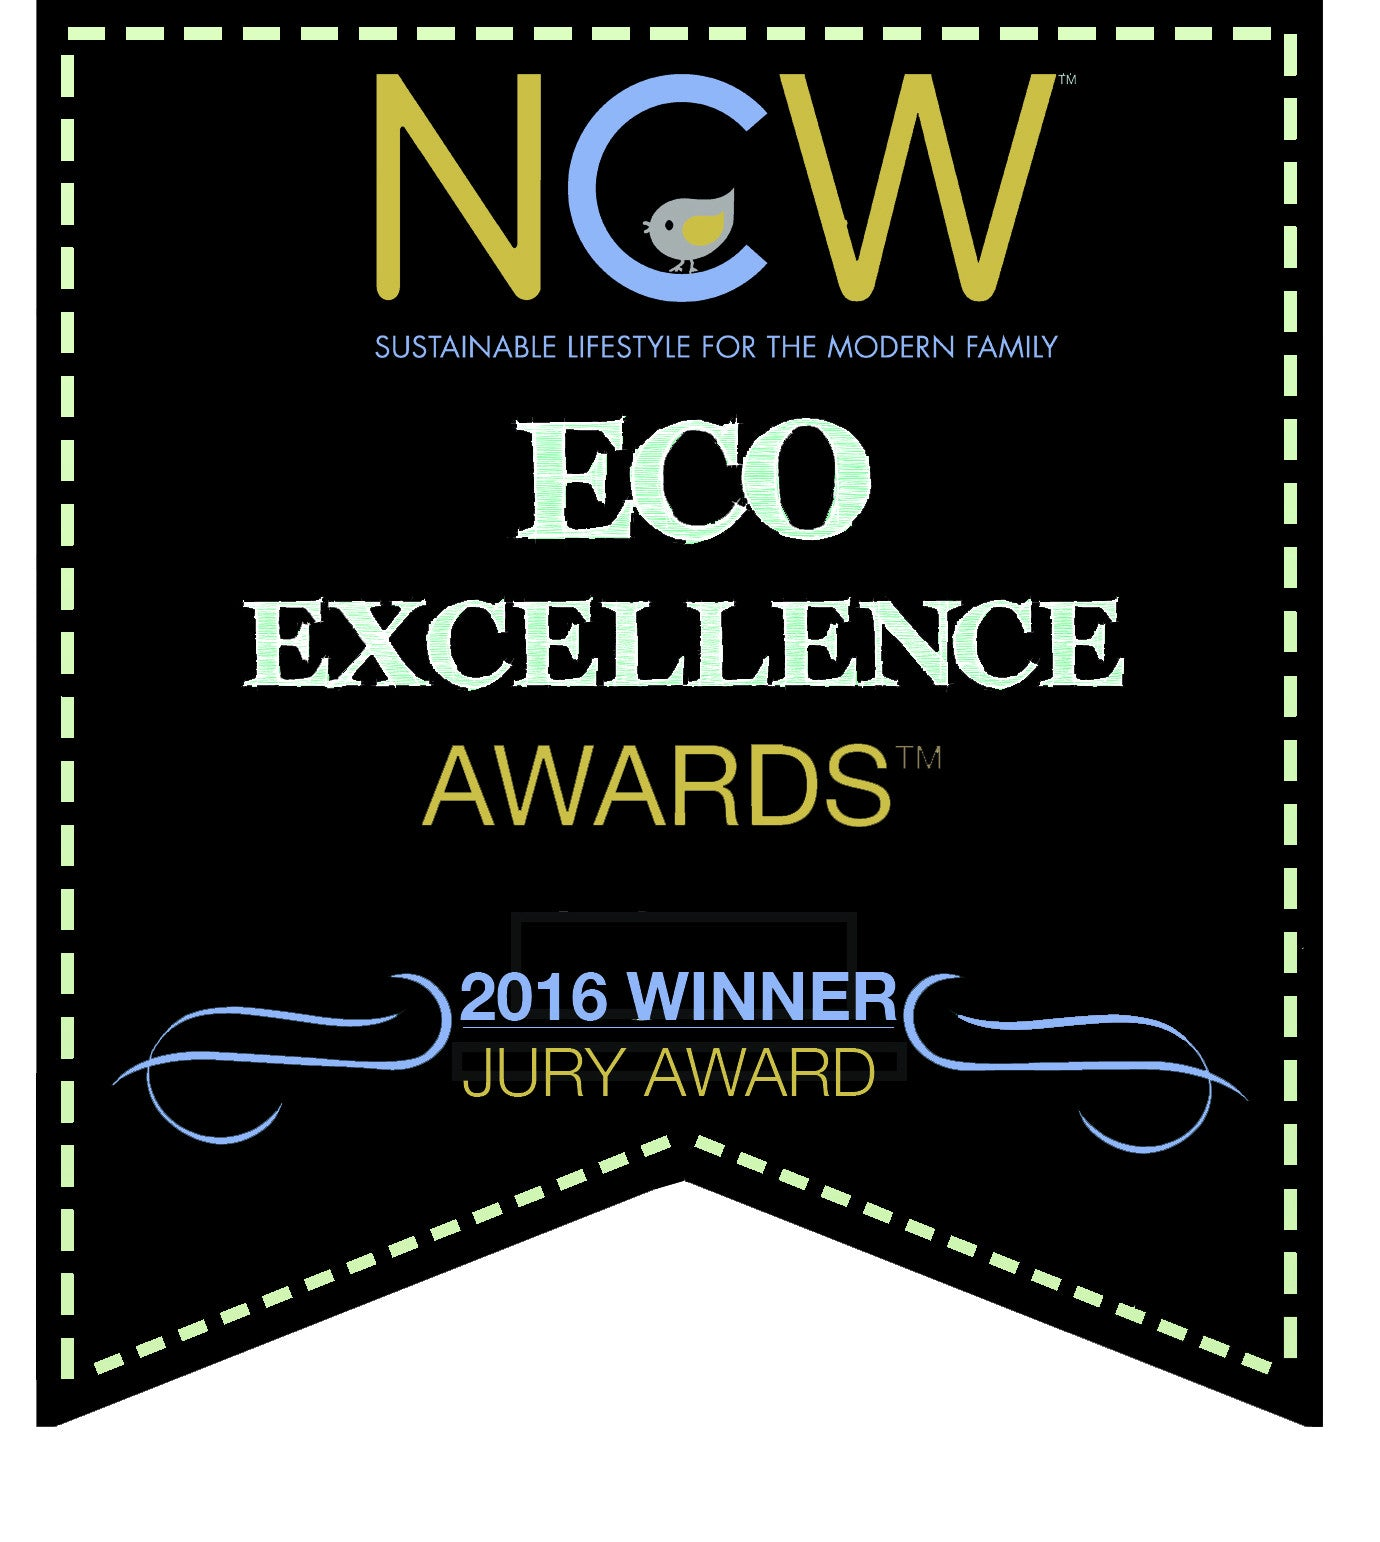 We're an Eco-Excellence Award Winner!